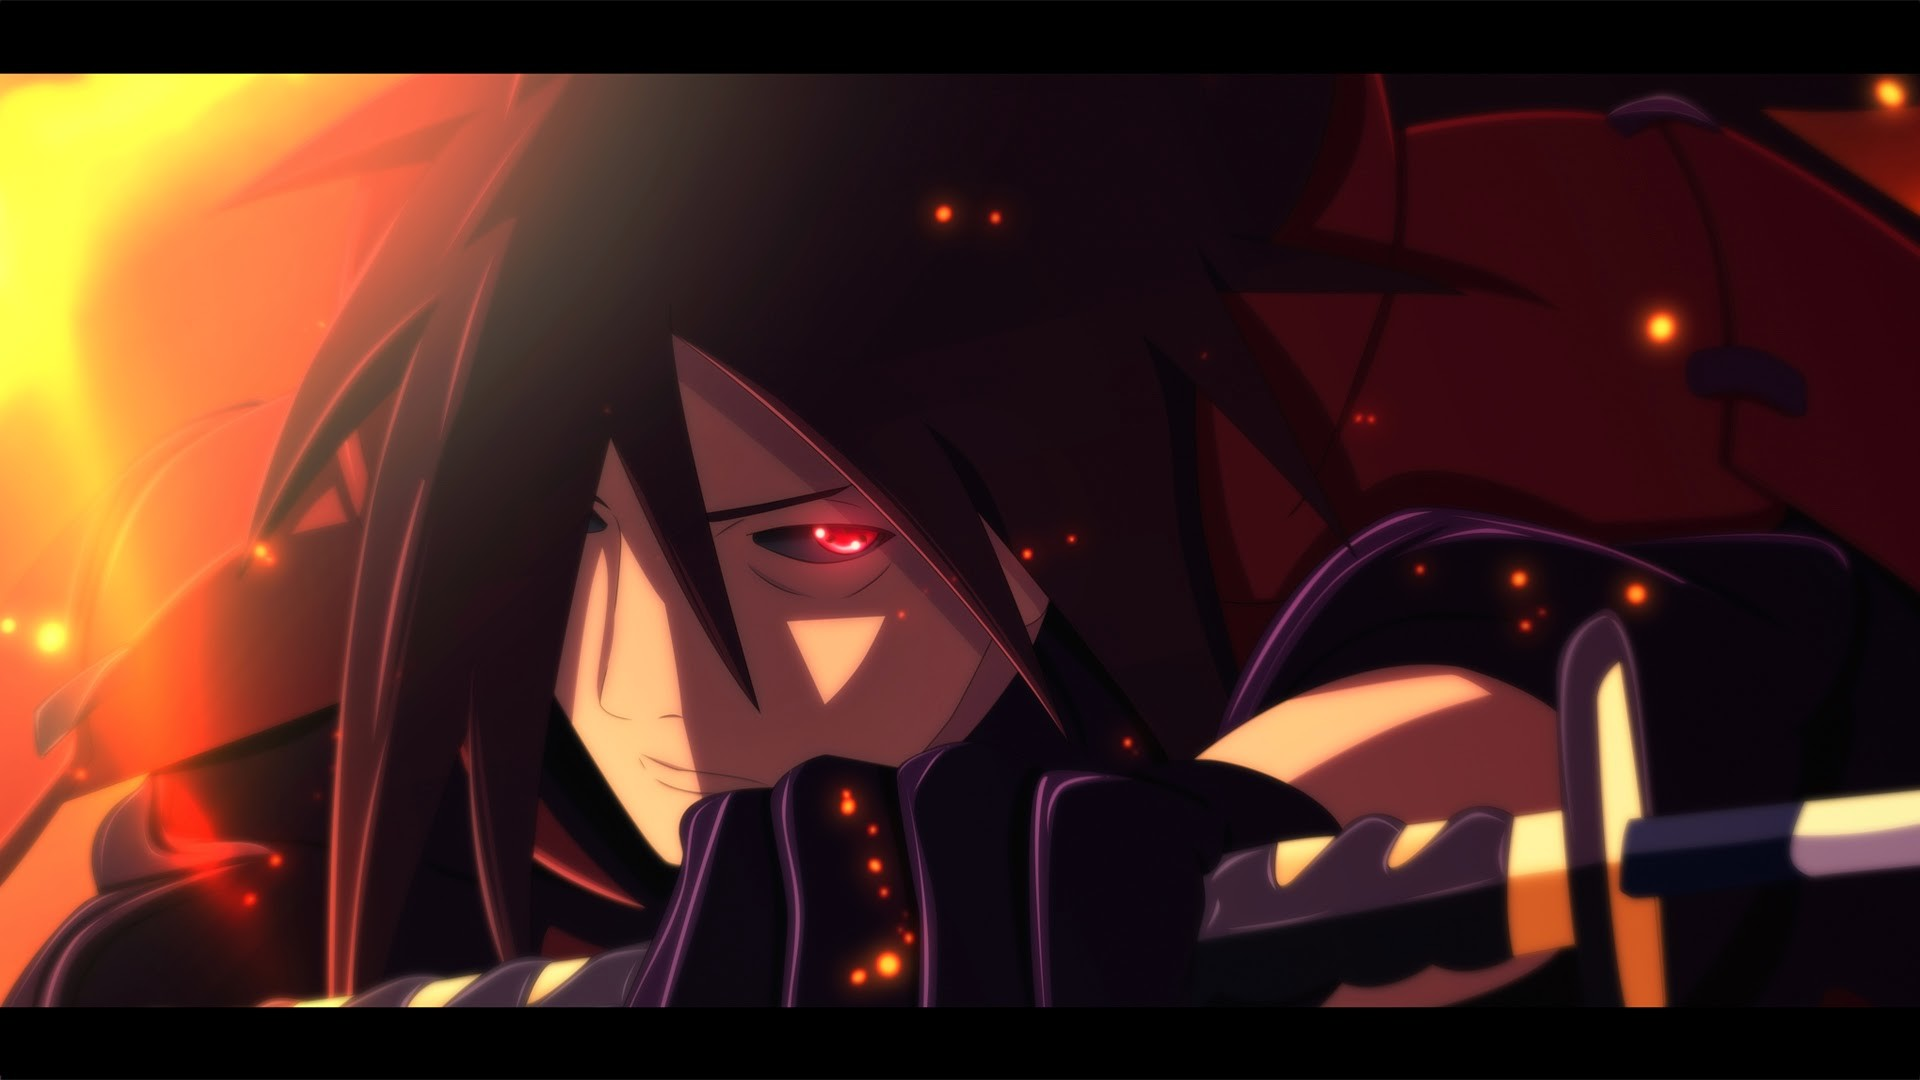 Res: 1920x1080, madara uchiha sharingan eyes hd wallpaper